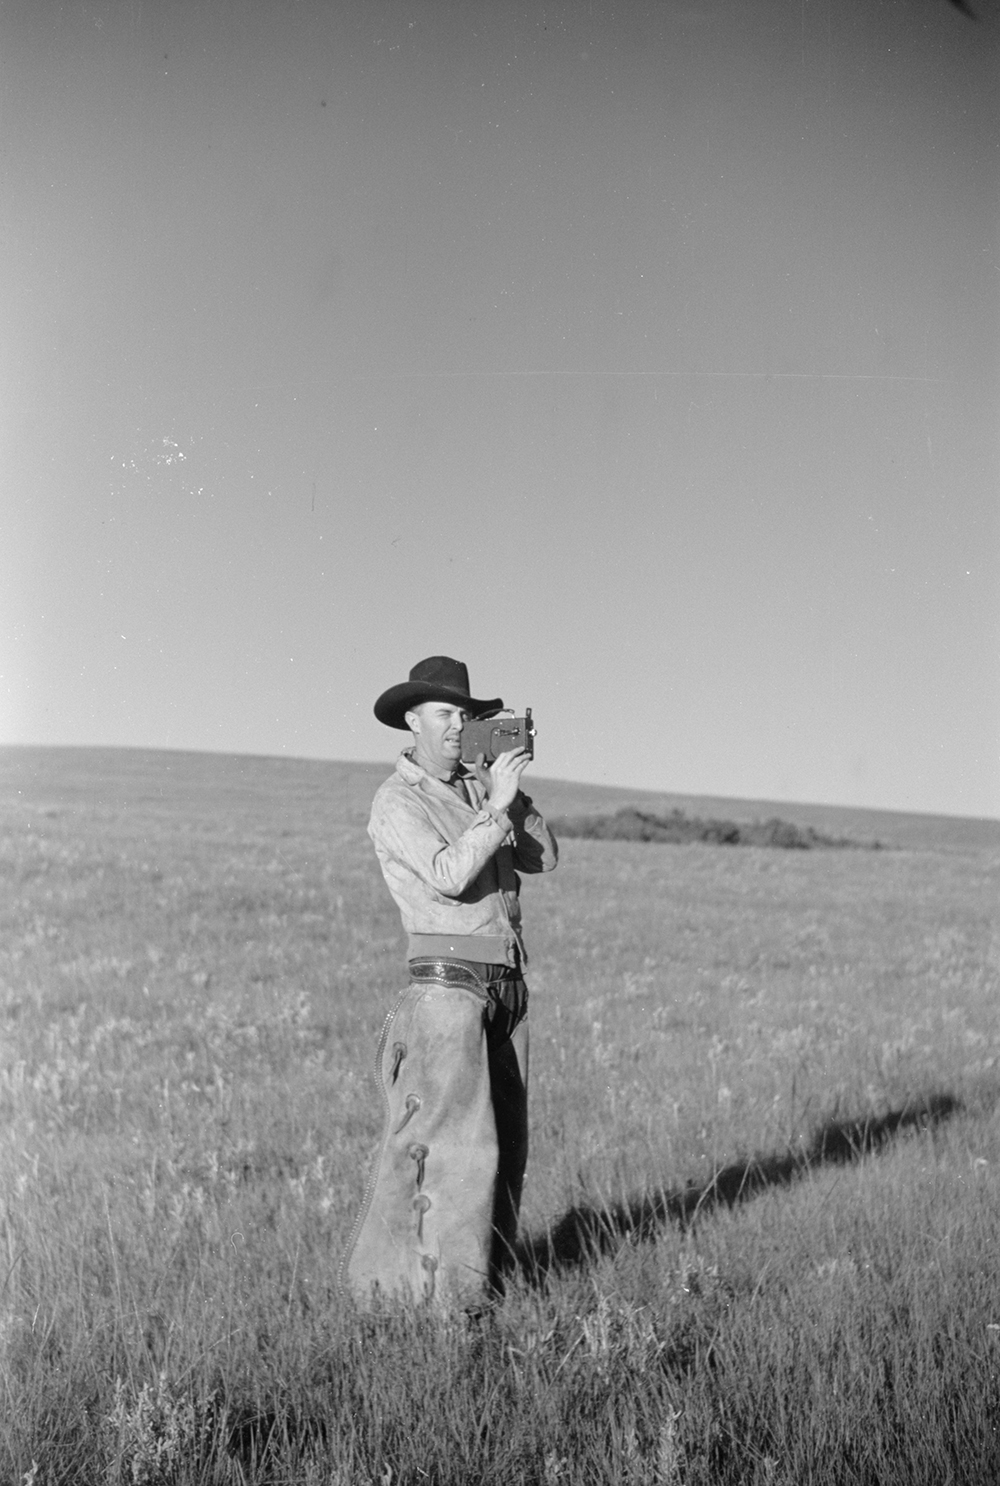 Cowboy with amateur movie camera in Montana, 1939. Photograph by Arthur Rothstein. Library of Congress, Prints and Photographs Division.